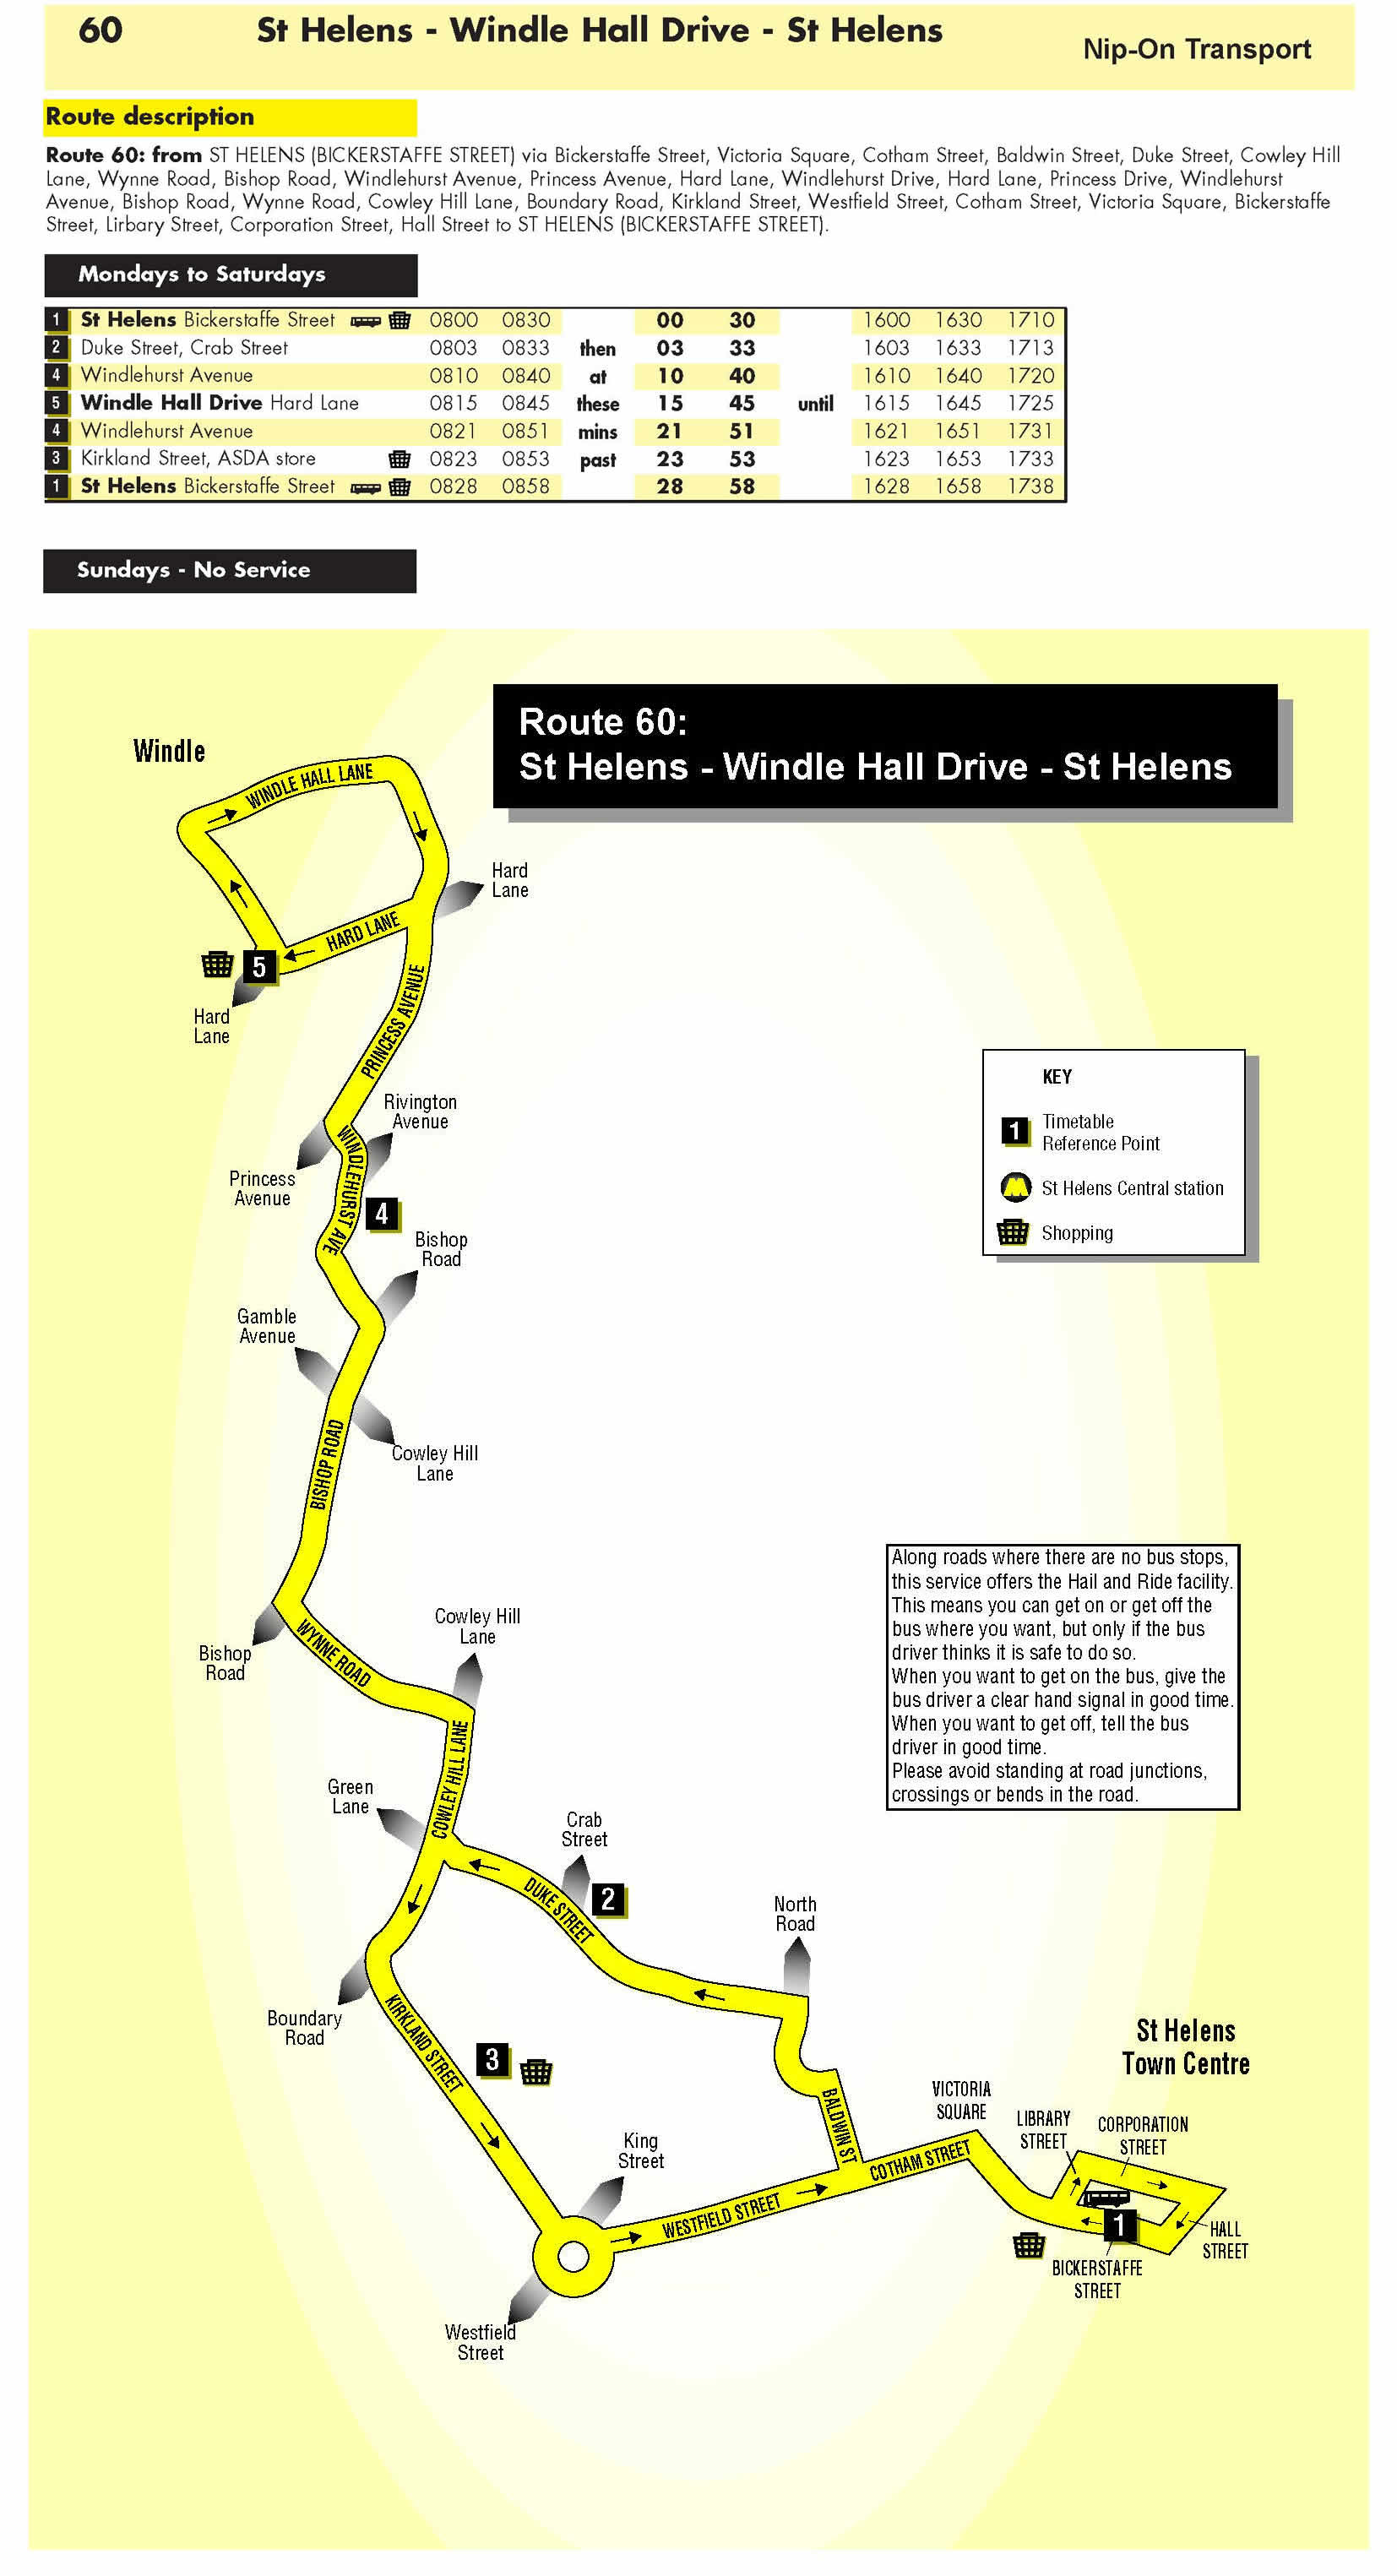 Route 60 St Helens - Windle Hall Drive - St Helens